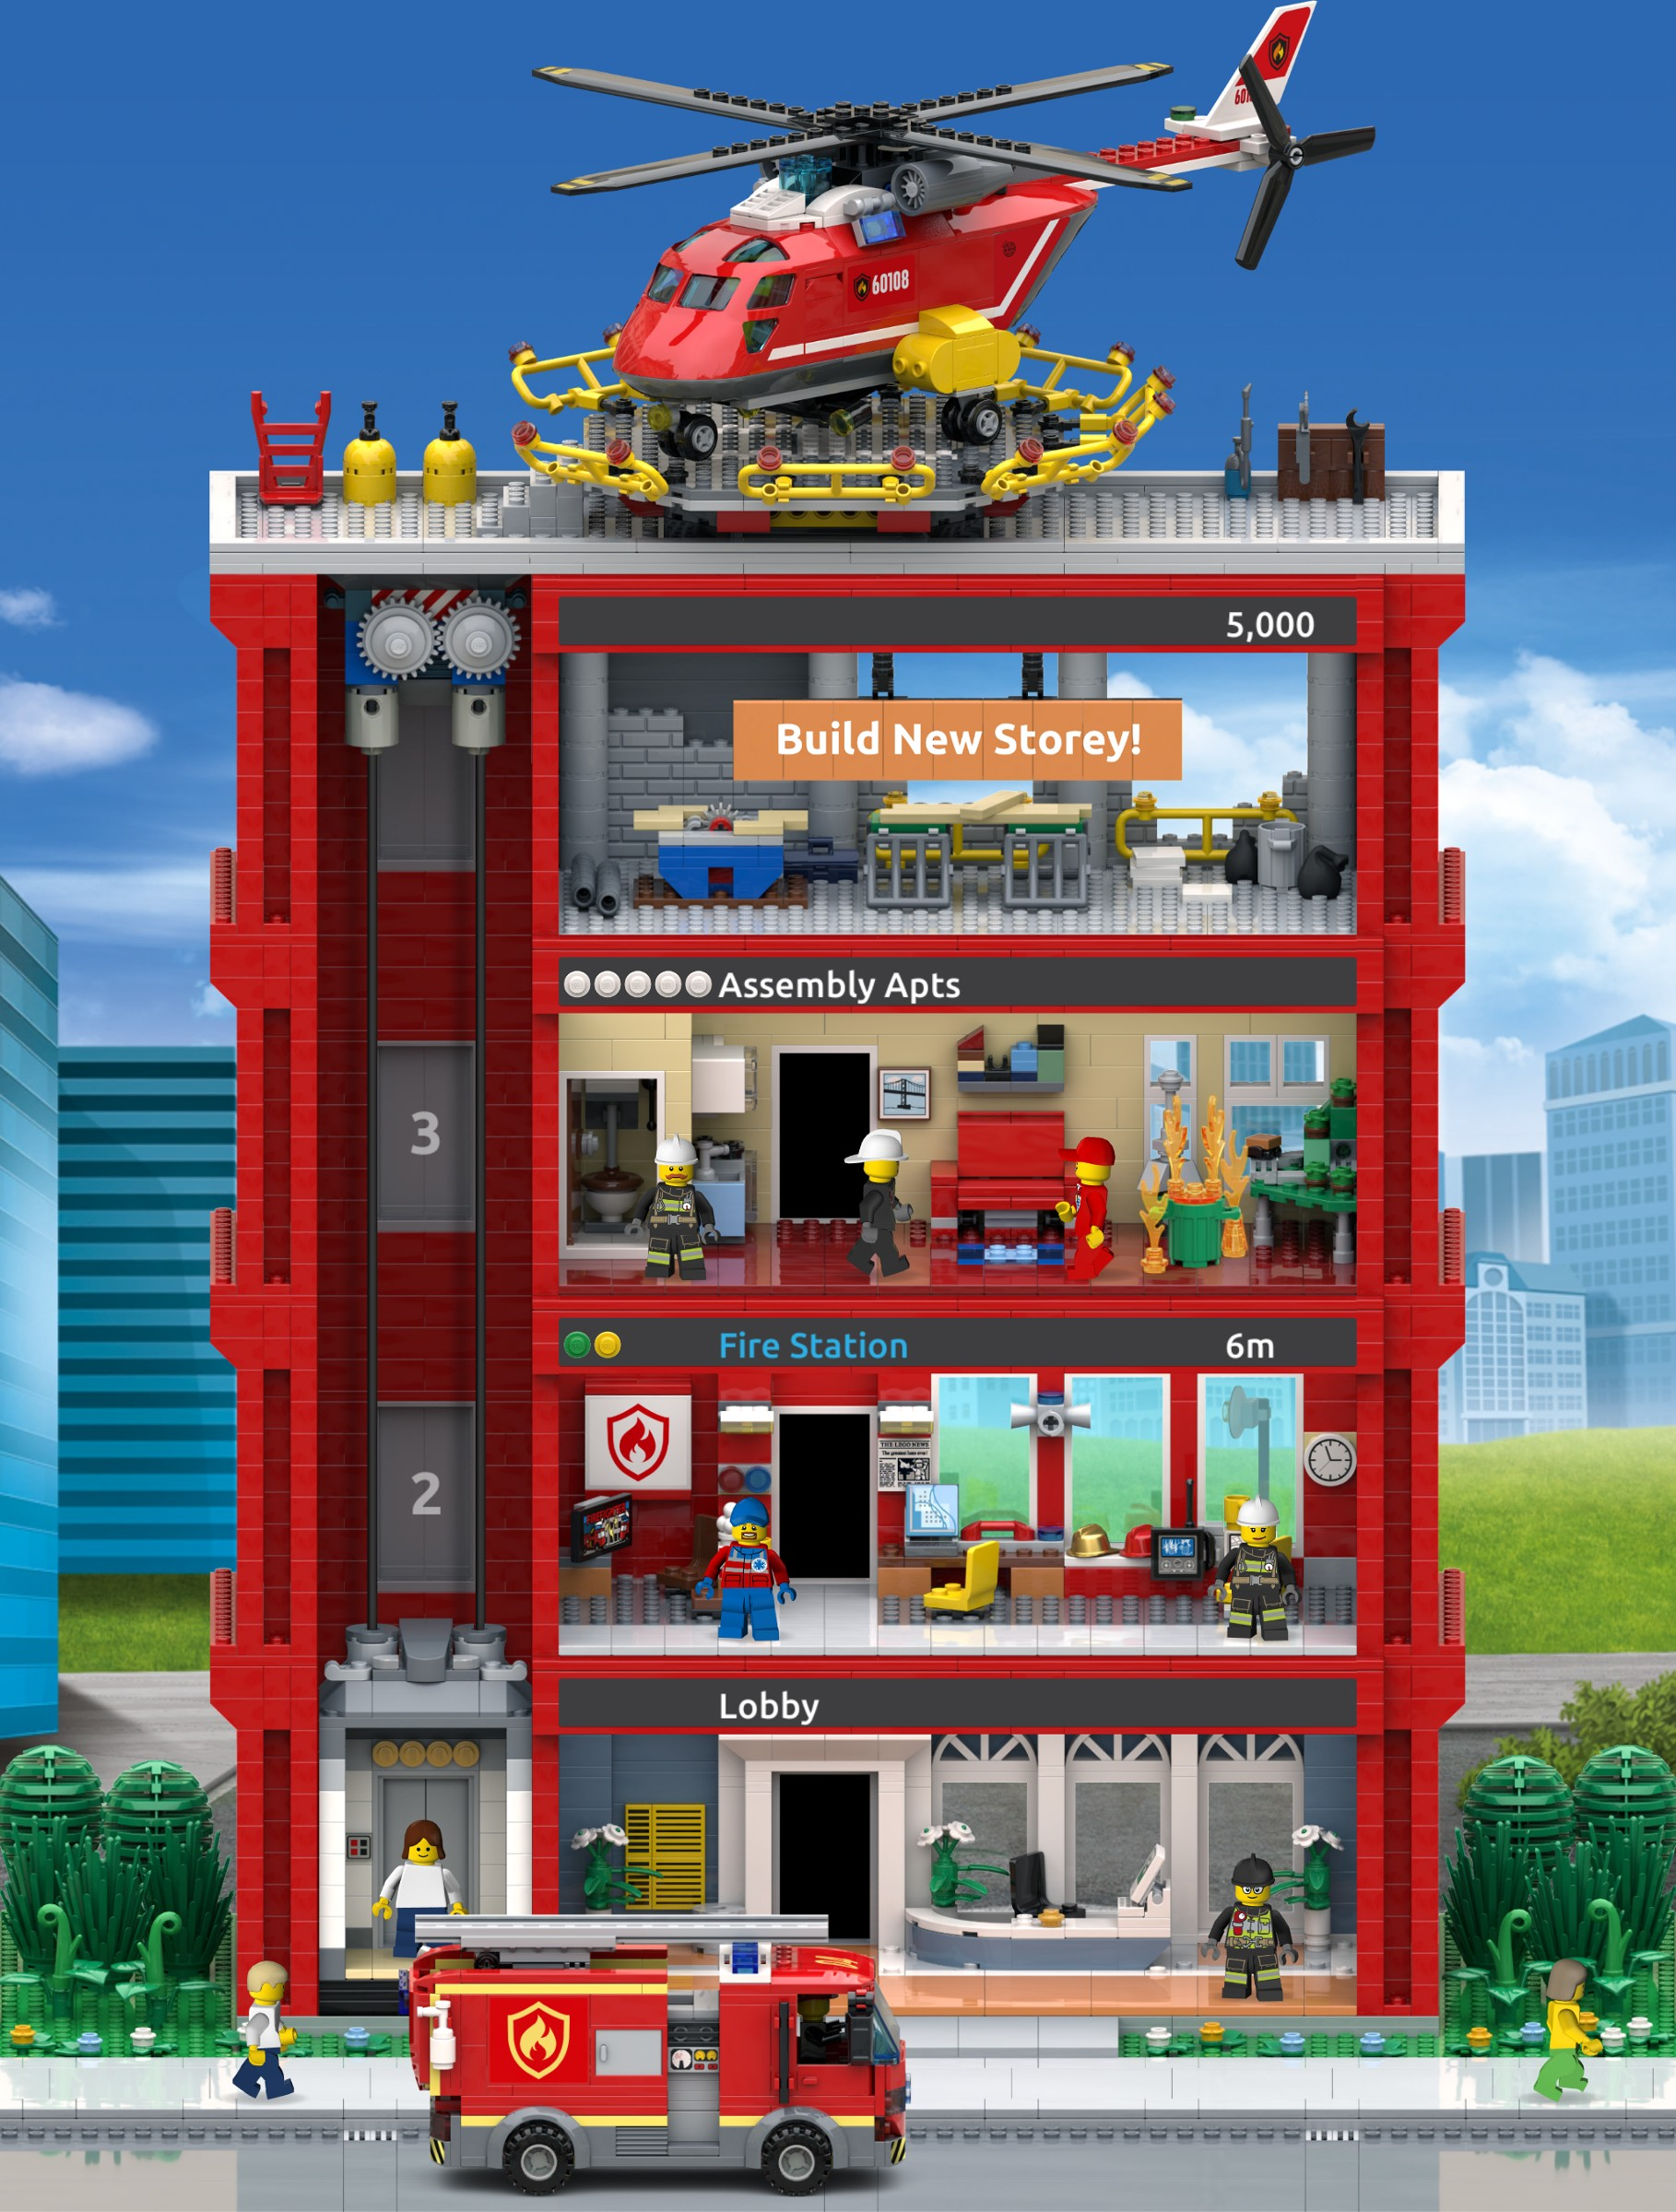 LEGO Tower mobile game announced | Brickset: LEGO set guide and database